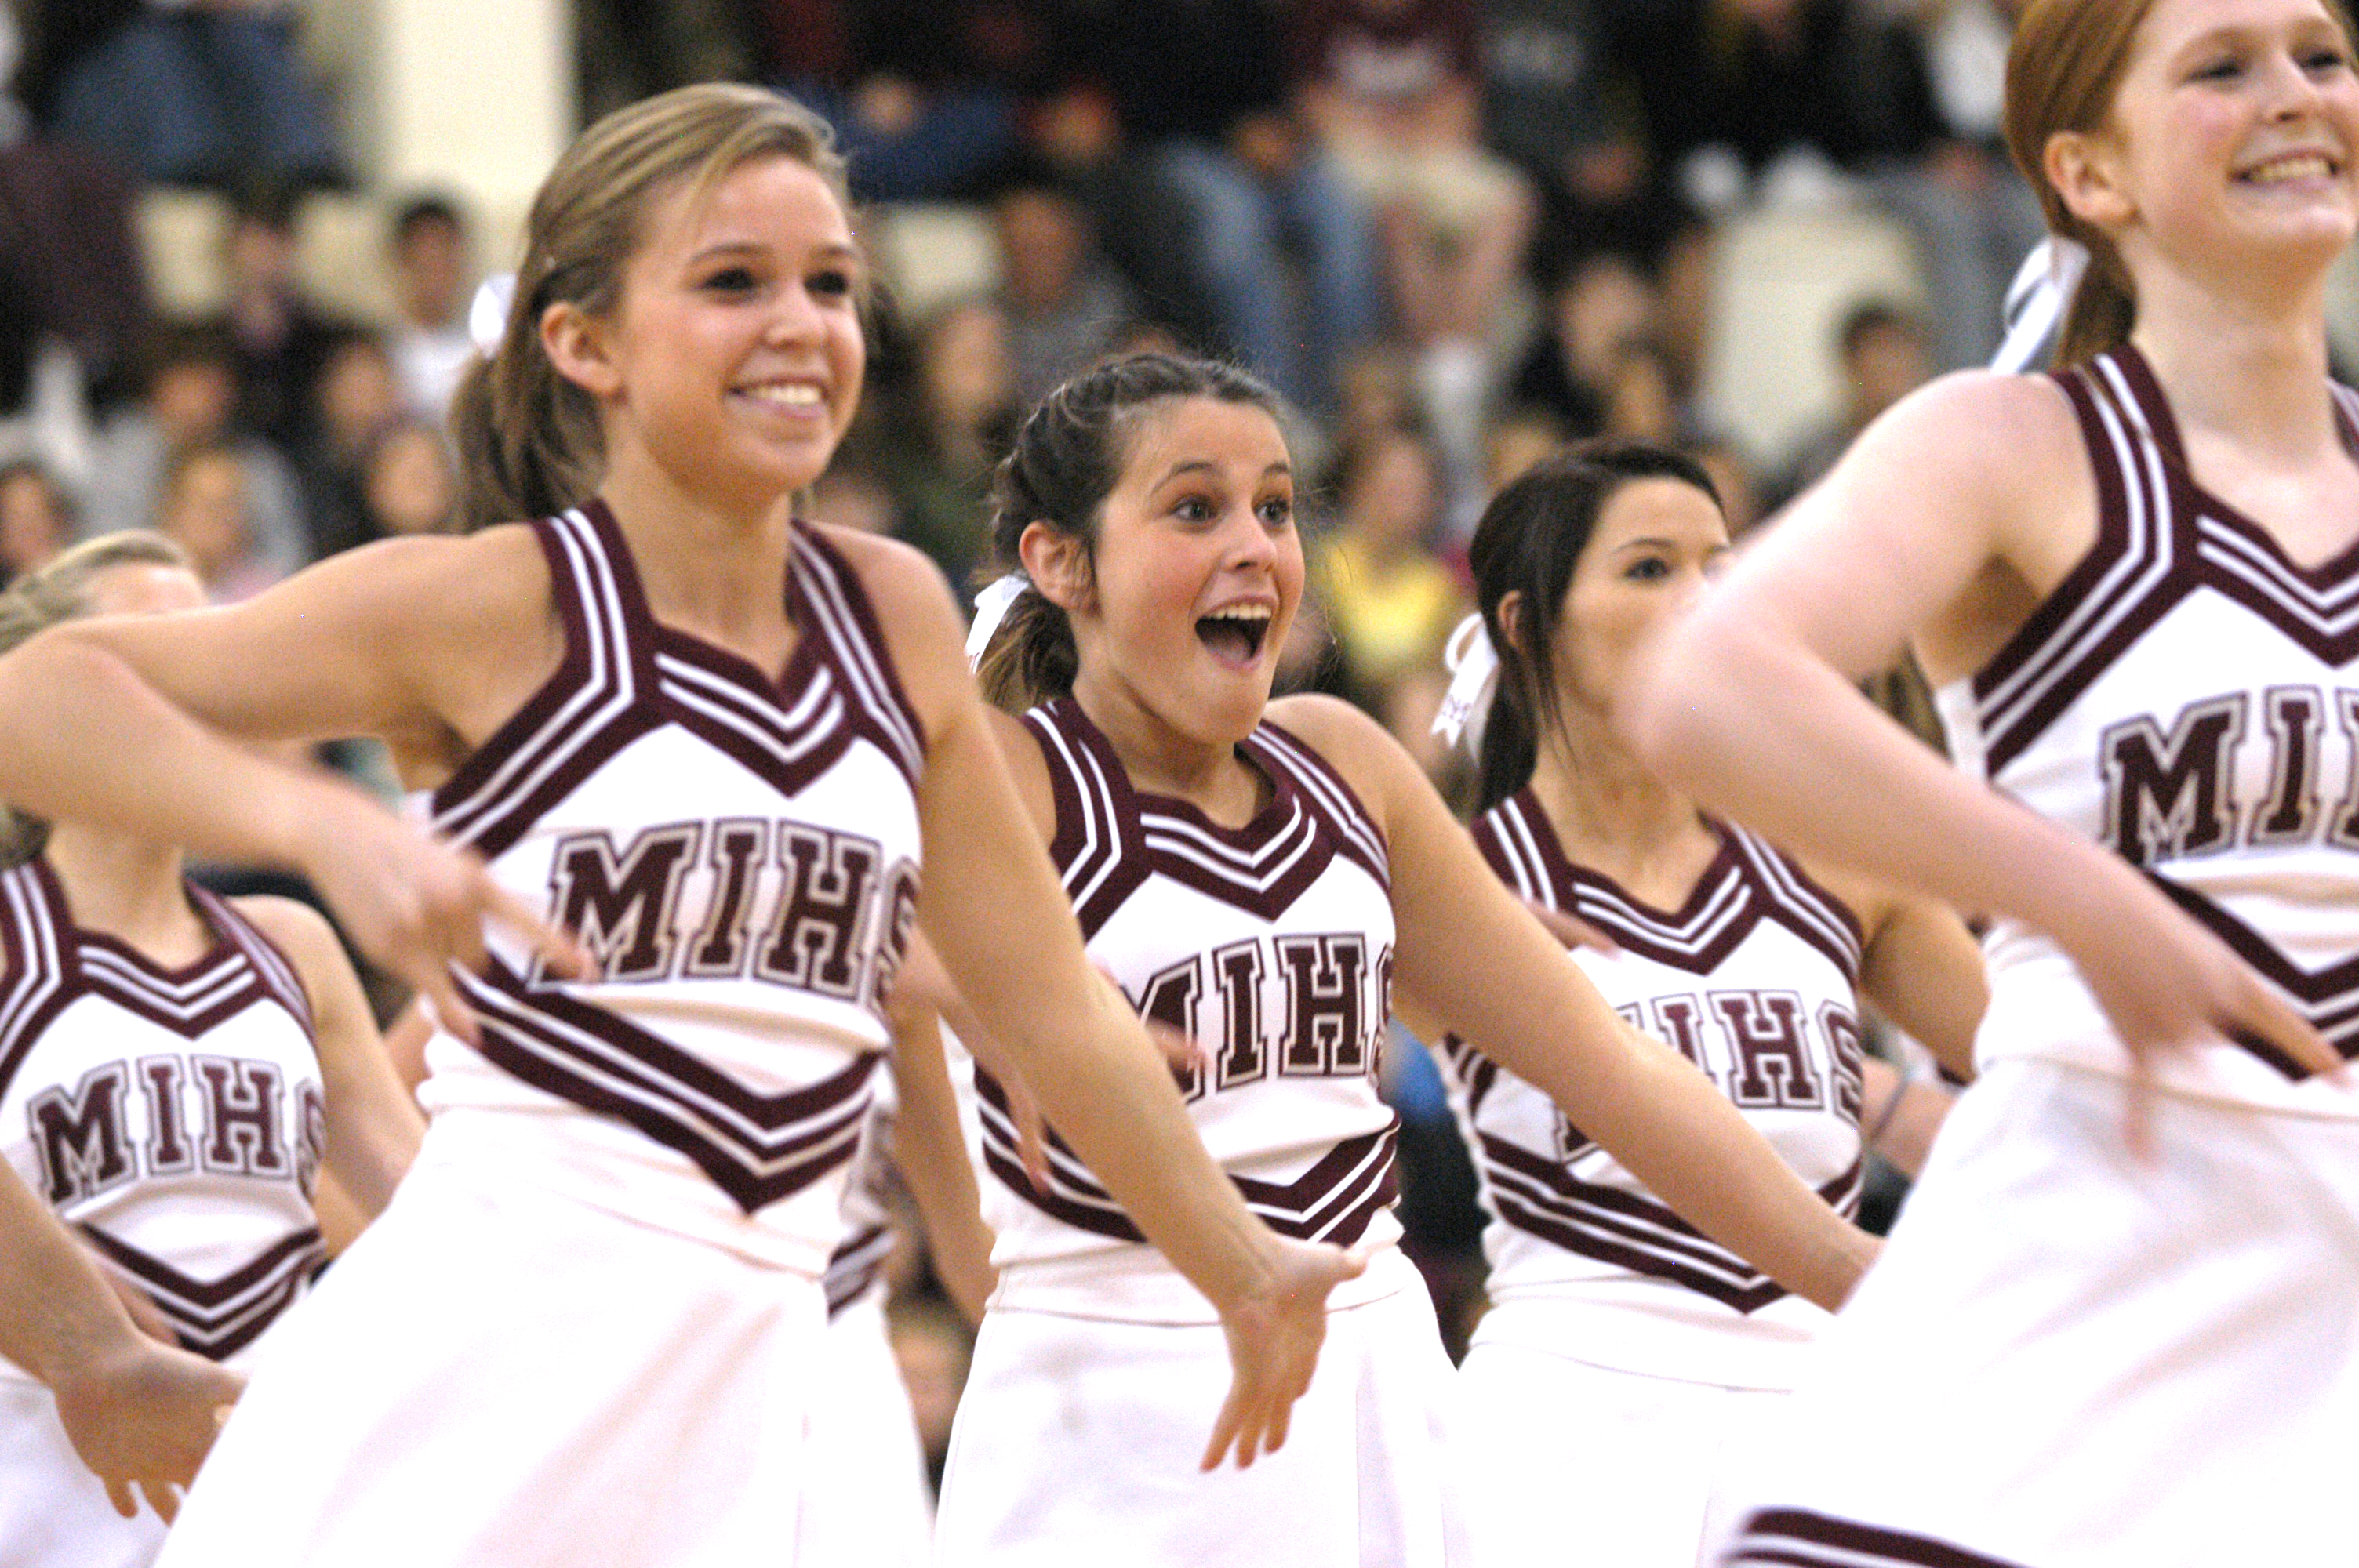 Description Mercer Island High School Cheerleaders.jpg